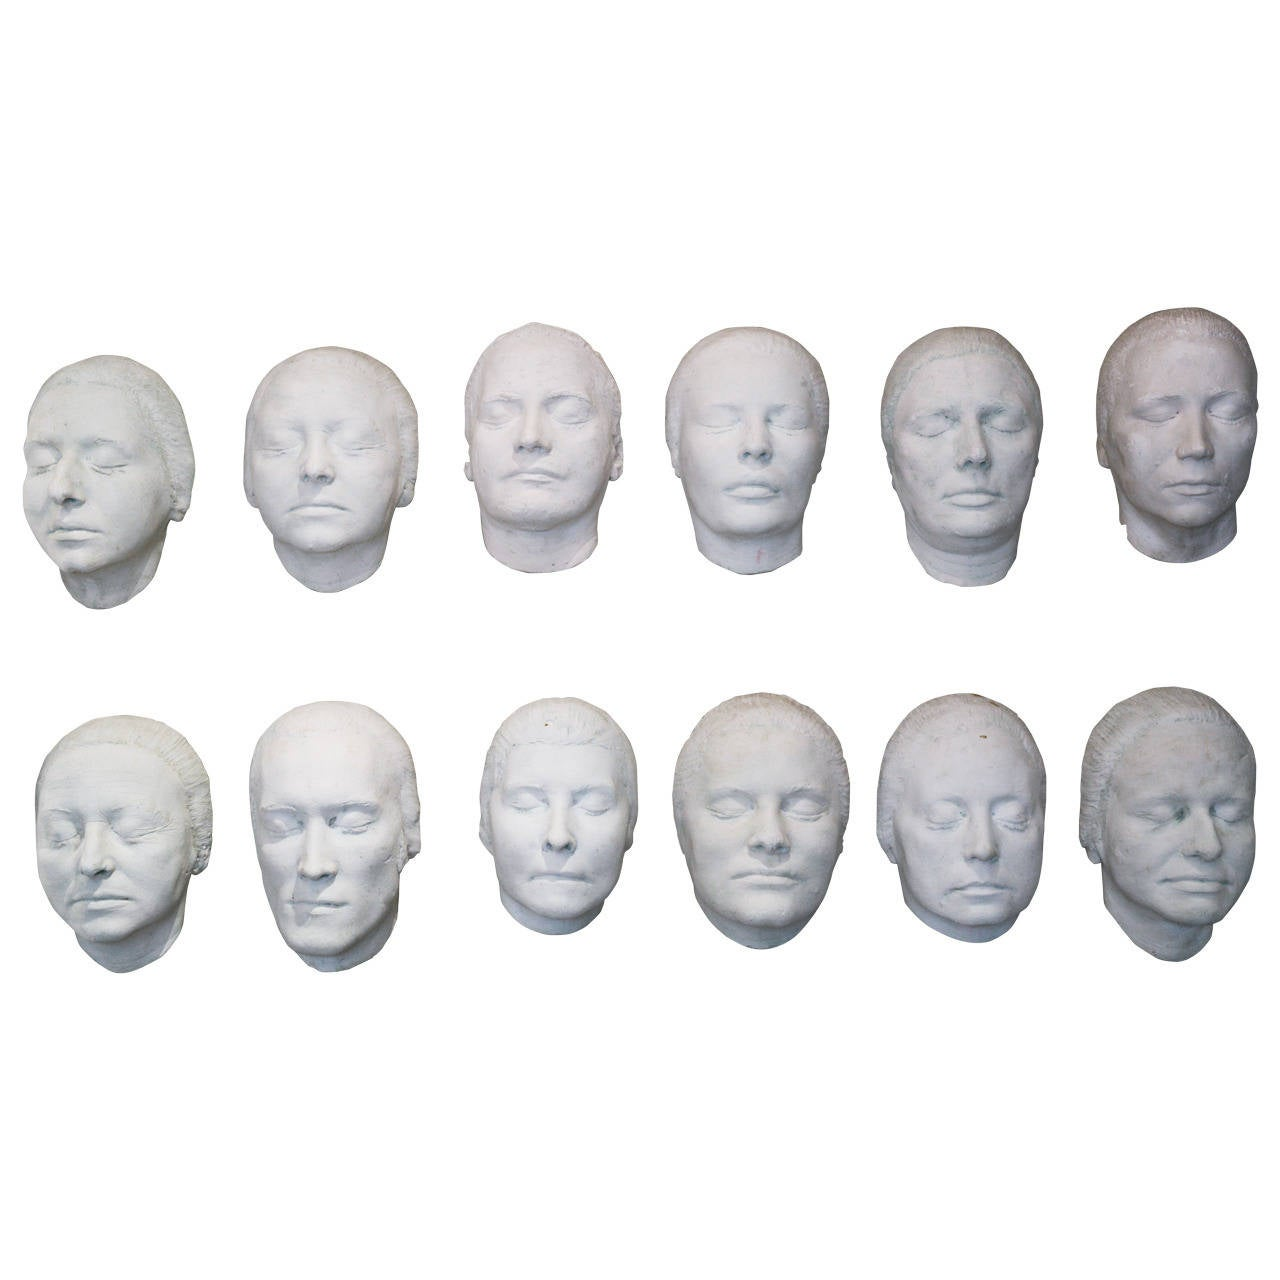 Collection of 12 Rare Plaster Masks of Human Faces 1